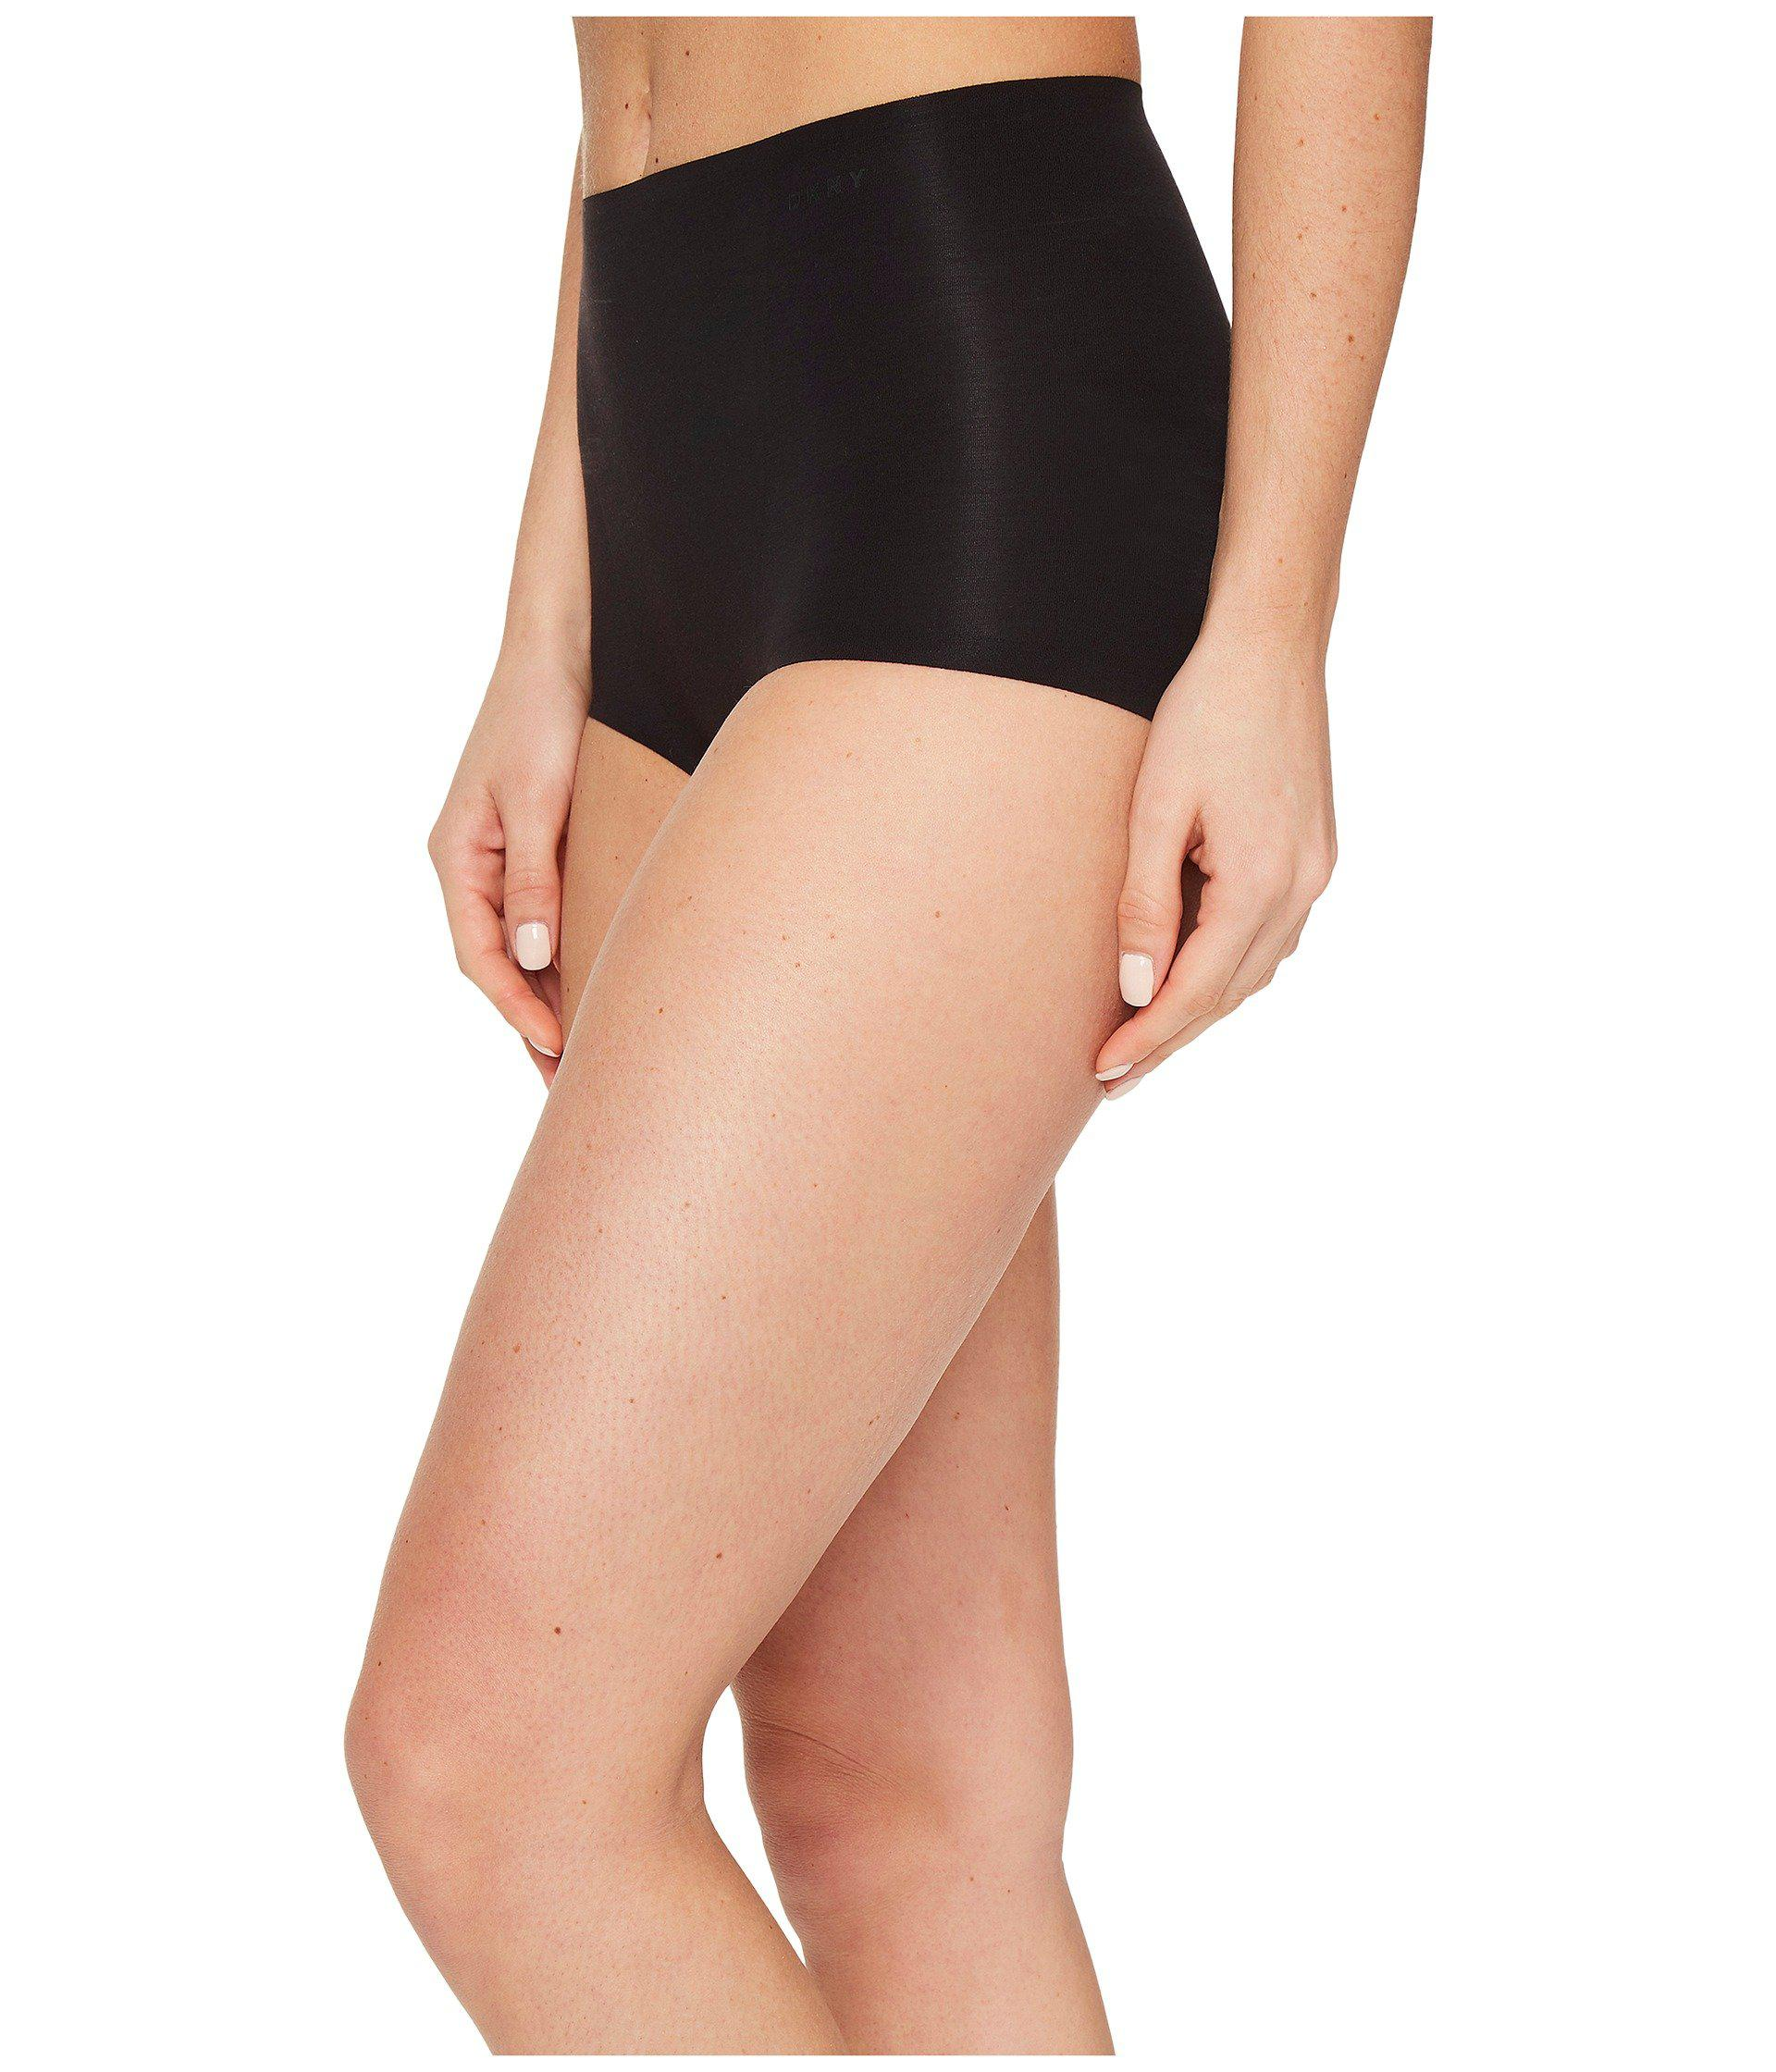 DKNY Womens Classic Cotton Smoothing Brief Briefs